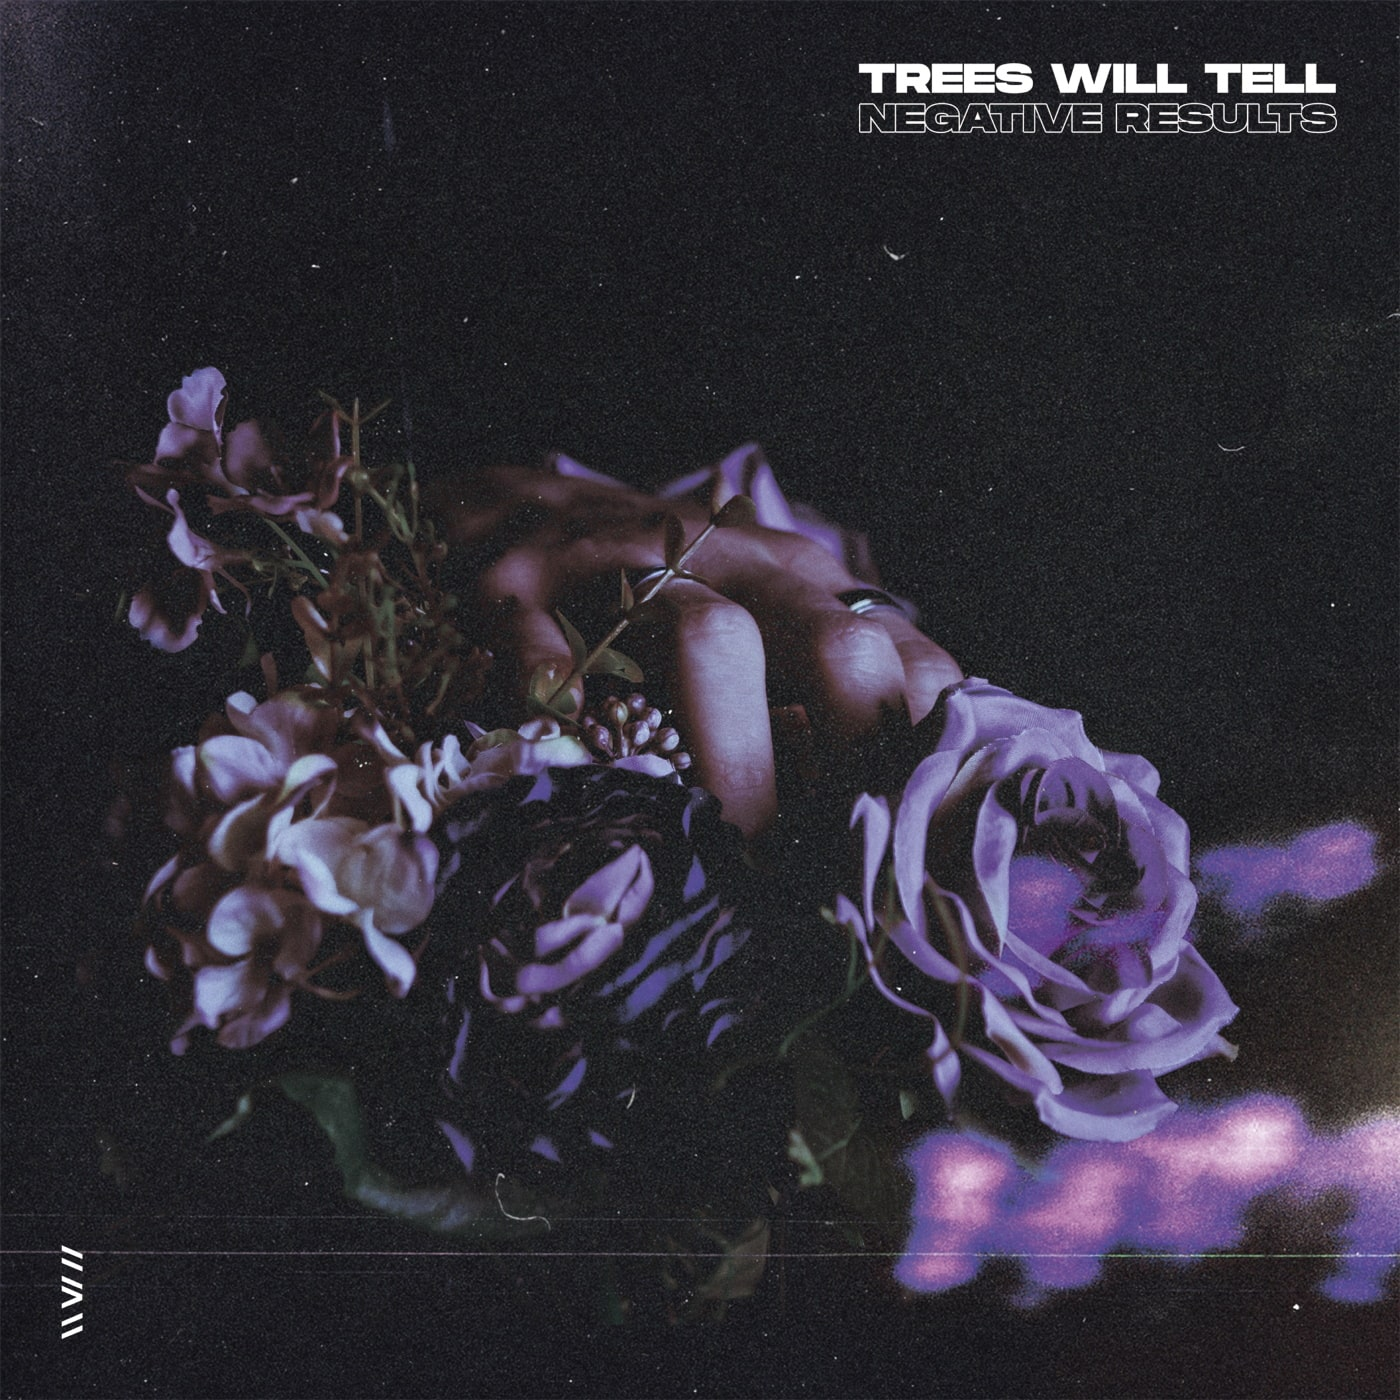 TREES WILL TELL cover